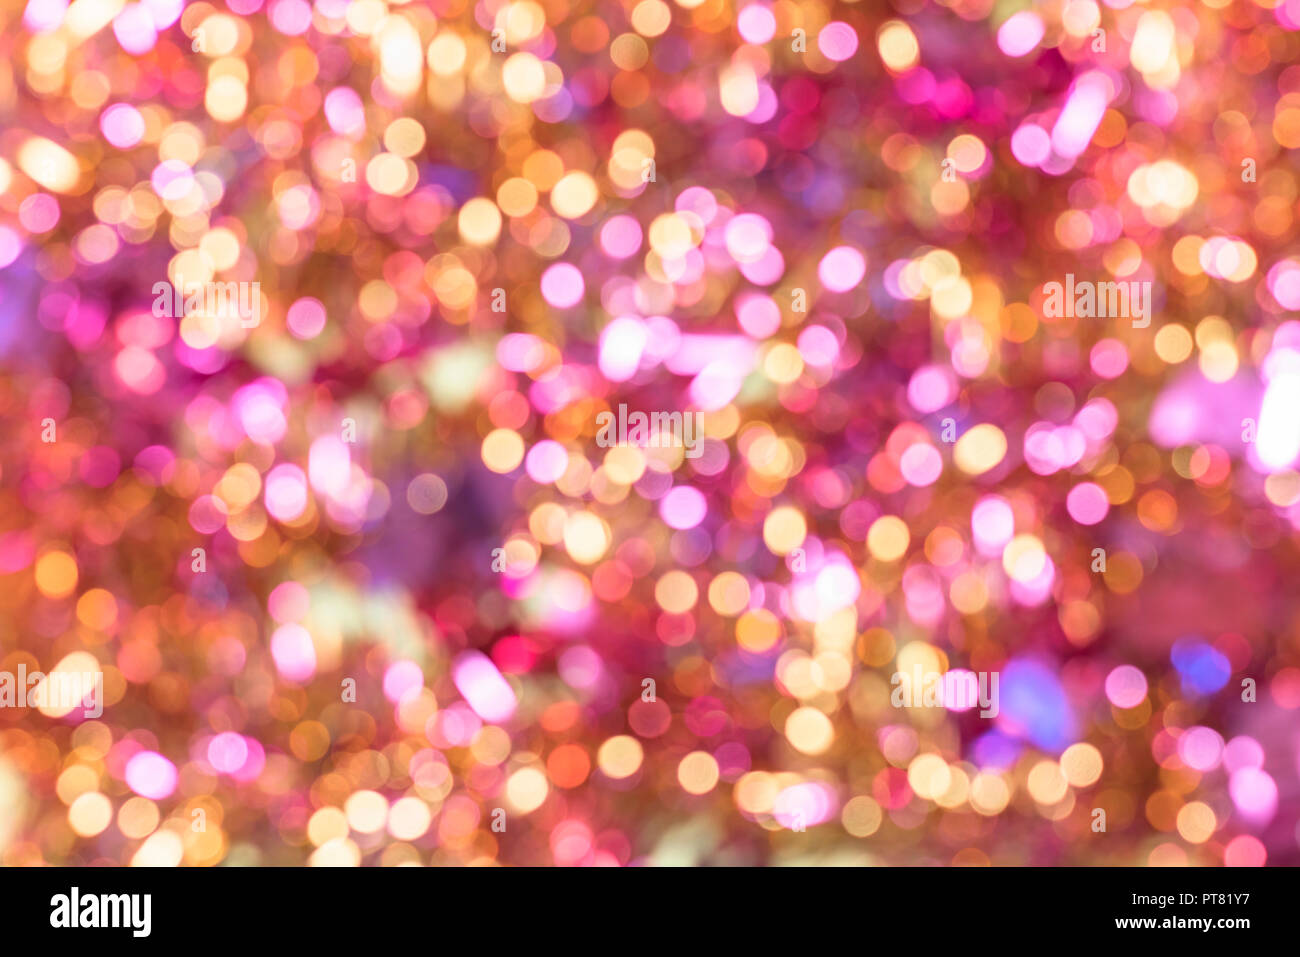 Background texture full of unsharp blurring golden yellow and cute pink shining bokeh lens aesthetic aberration effect. Stock Photo